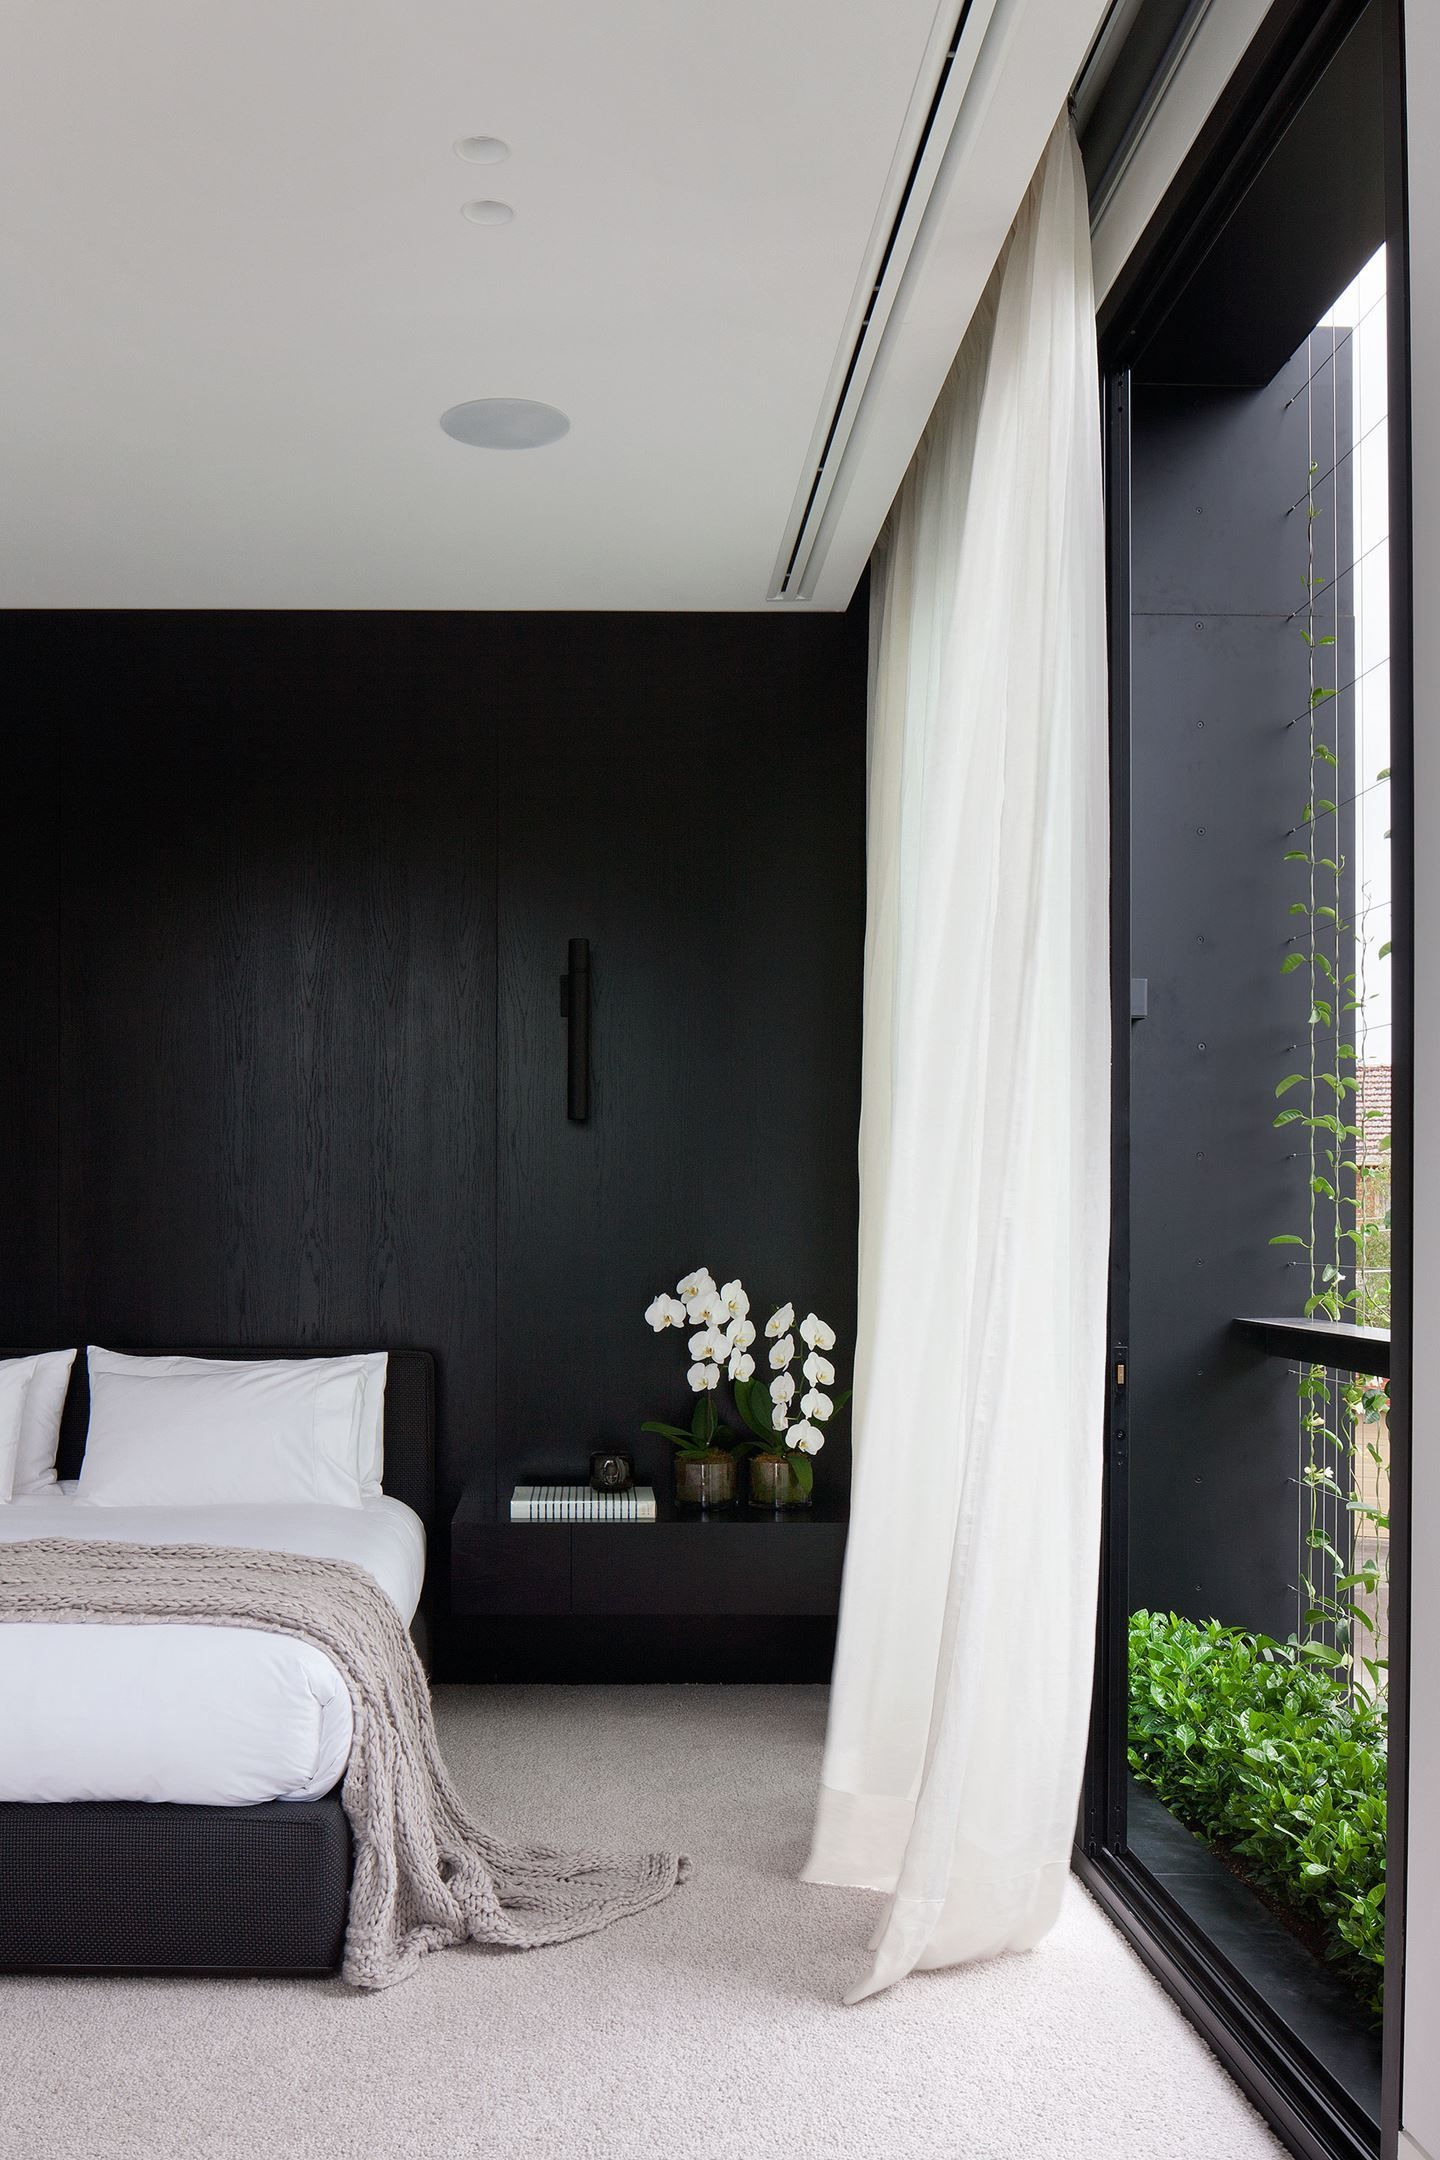 H G Top 50 Rooms 2016 Bedrooms Bedrooms Blackmarblehouse Darkmarblehouse Hampg Marblehouseaccessori In 2020 Black Accent Walls House Interior Luxurious Bedrooms